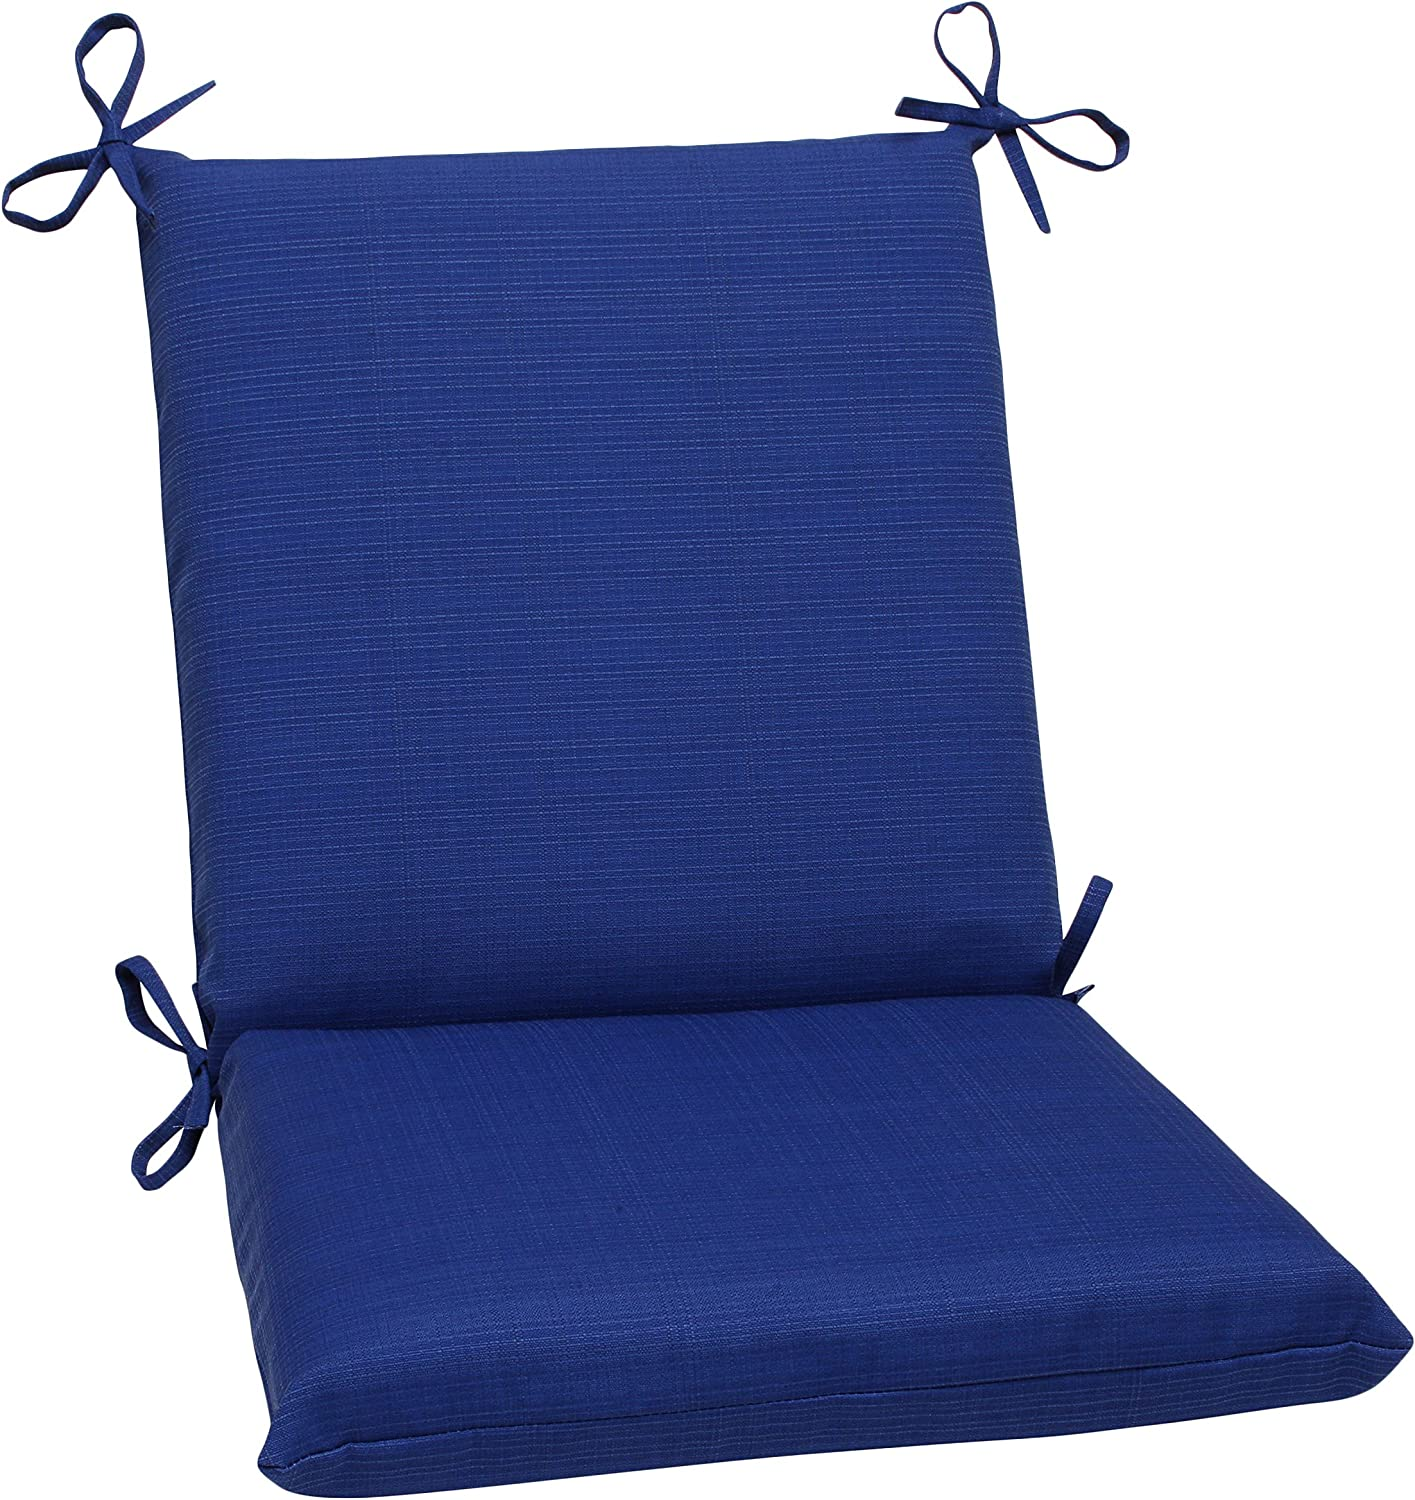 Pillow Perfect Outdoor/Indoor Squared Chair Cushion, 36.5 in. x 18 in, Fresco Blue